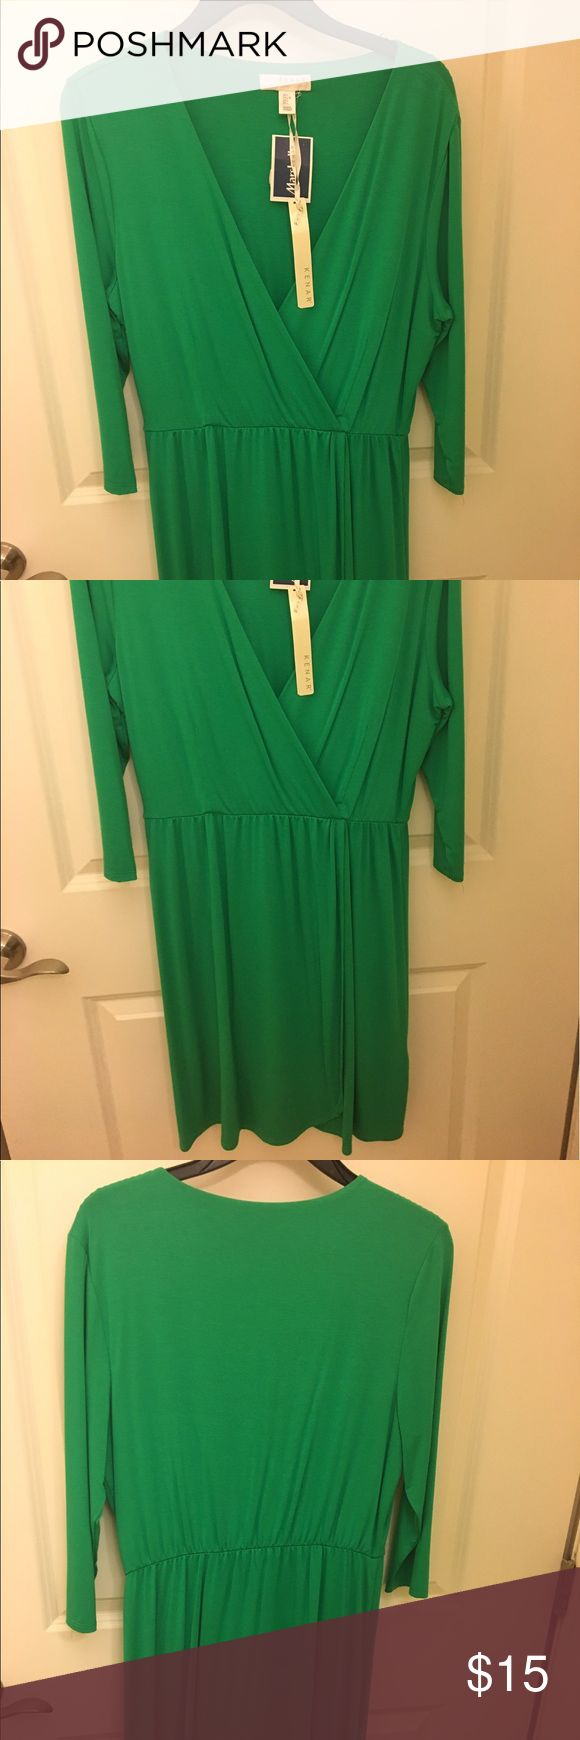 Kelly green casual dress Low cut Kelly green dress. never worn. Tags attached. Dresses